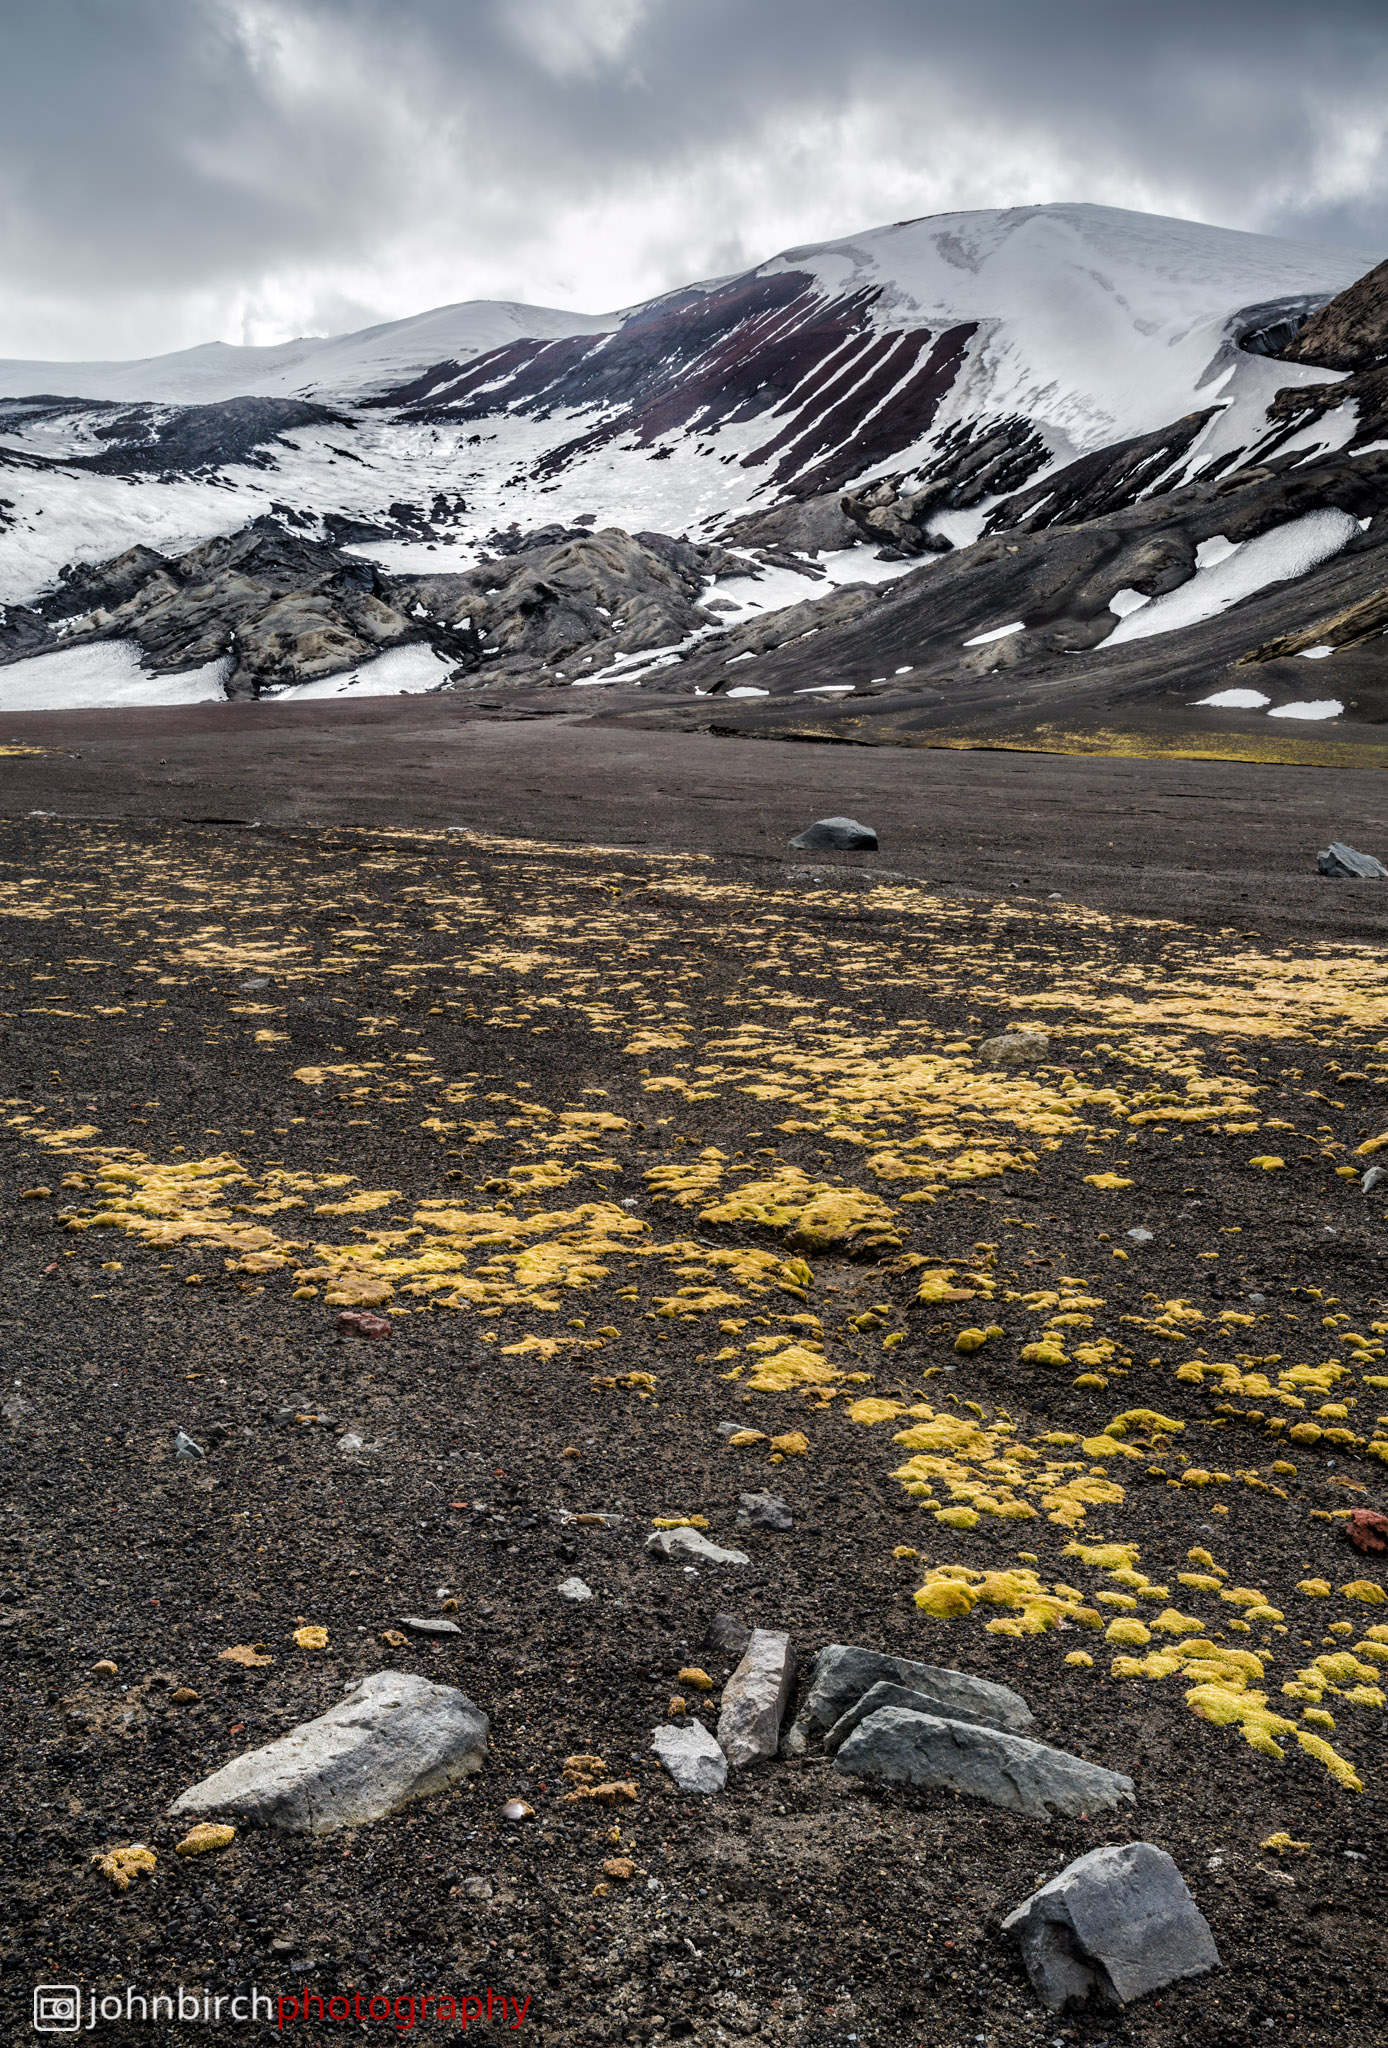 Deception Island Landscape